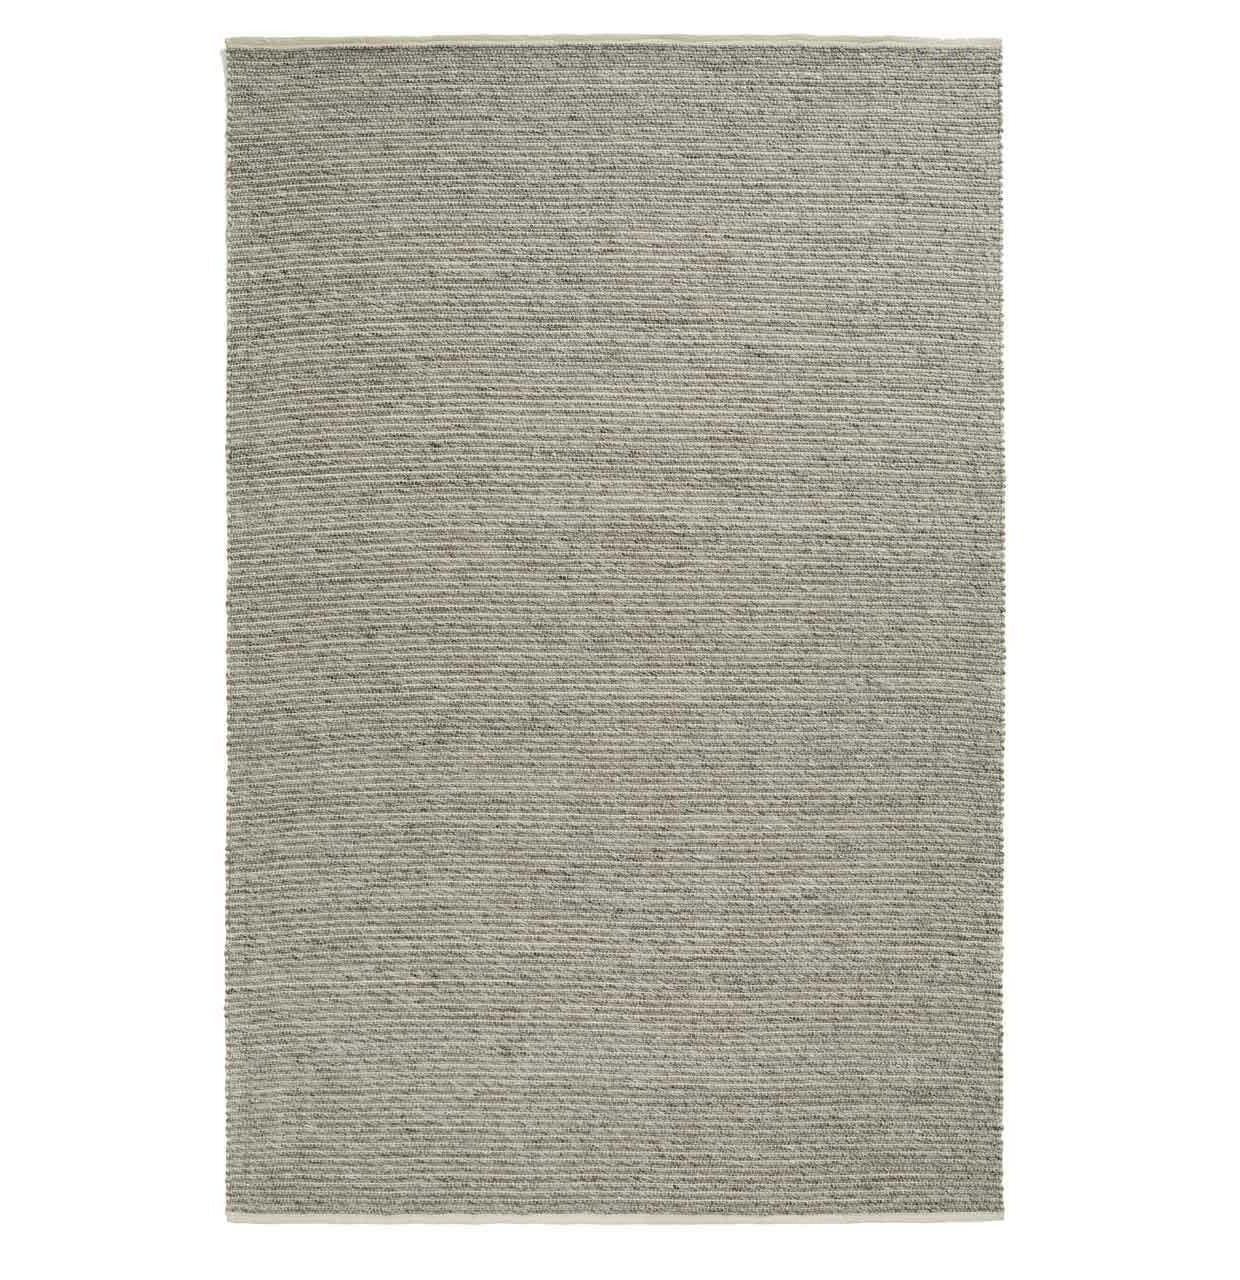 Weave floor rug available in Domain Gallery